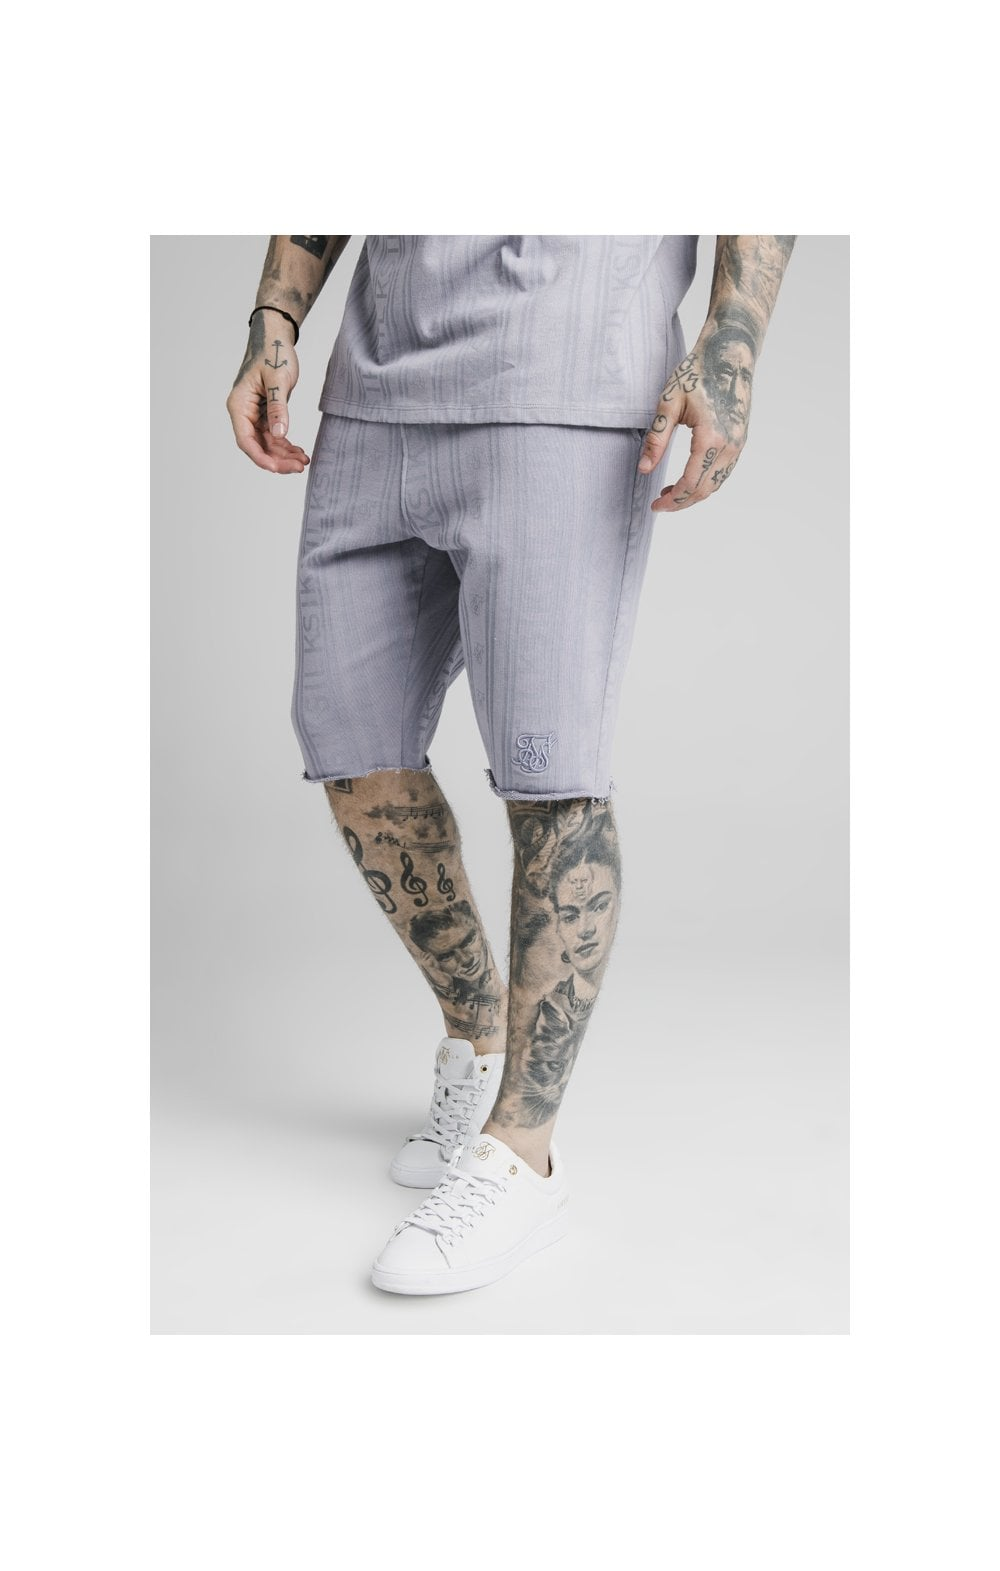 SikSilk Pastel Gym Shorts - Grey